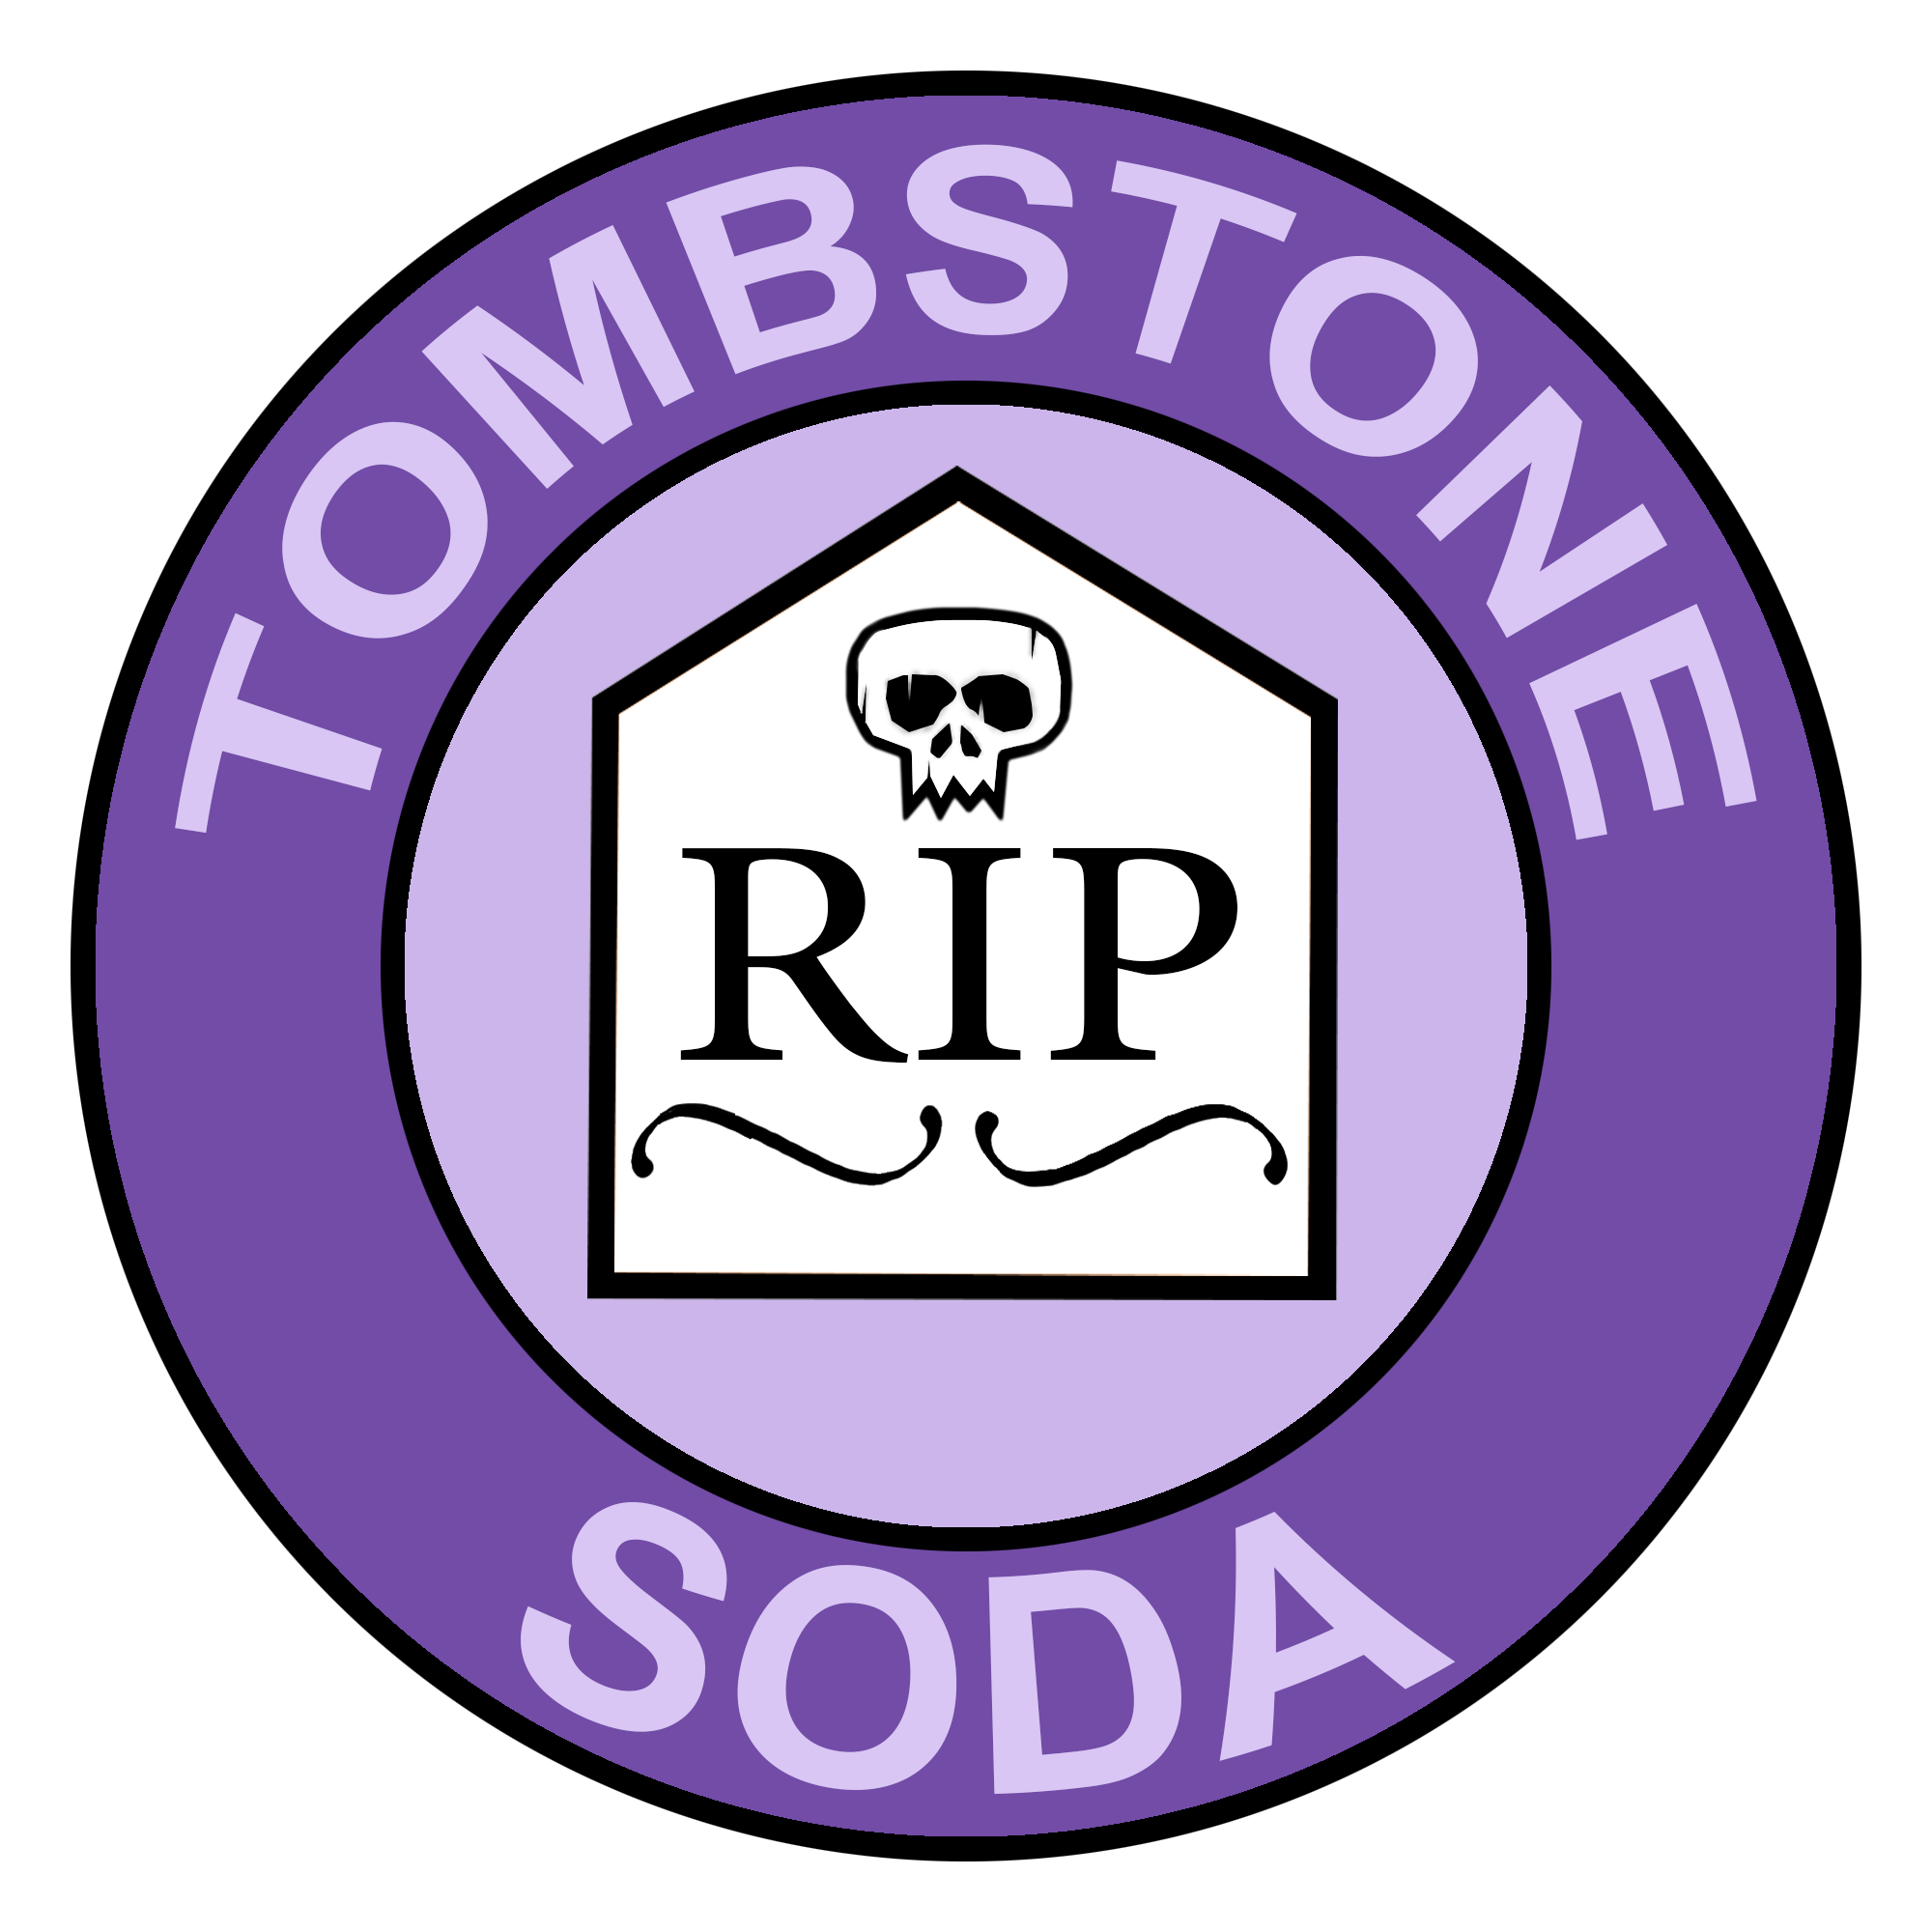 Tombstone Soda Call Of Duty Black Ops 2 Zombies